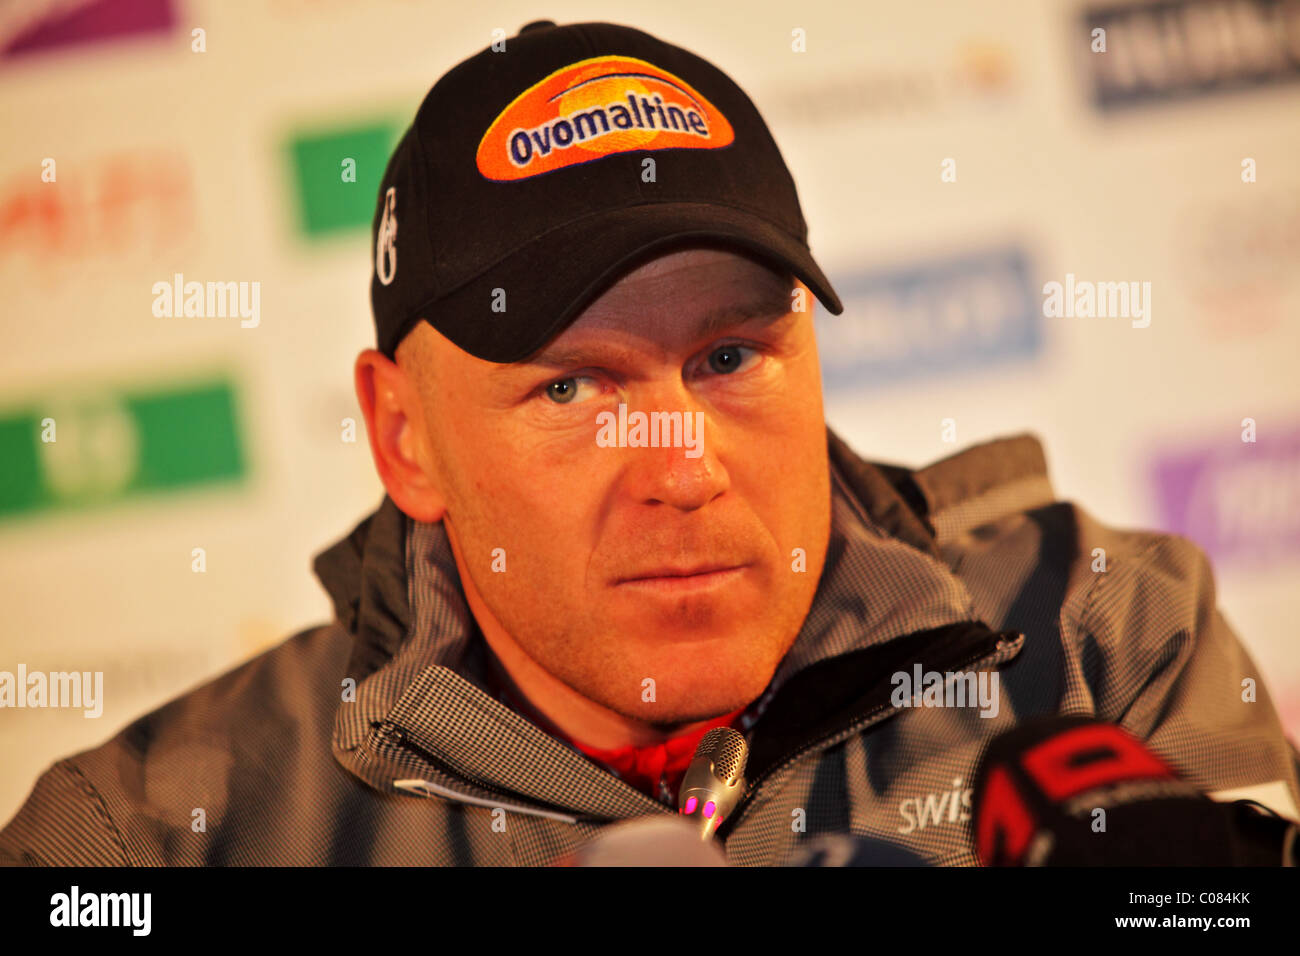 Didier Cuche (silver) at the FIS Alpine World Ski Championships 2011 winners press conference - Stock Image